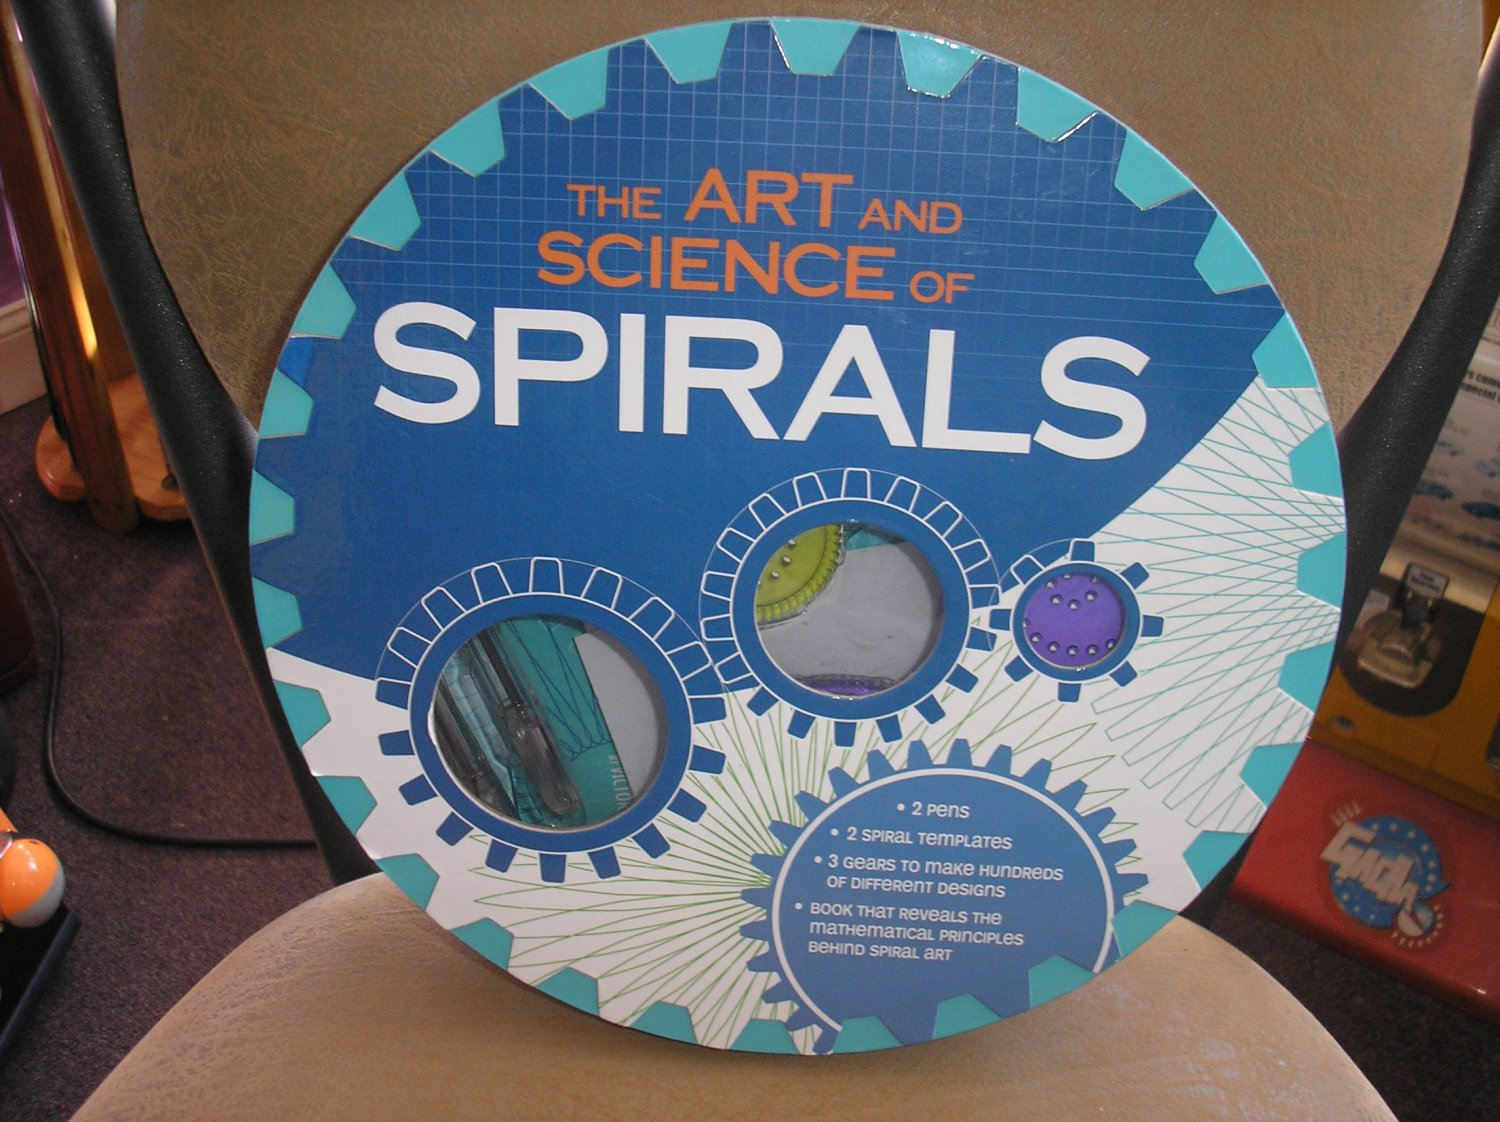 THE ART AND SCIENCE OF SPIRALS by Victor Dorff - STERLING INNOVATIONS - BRAND NEW!